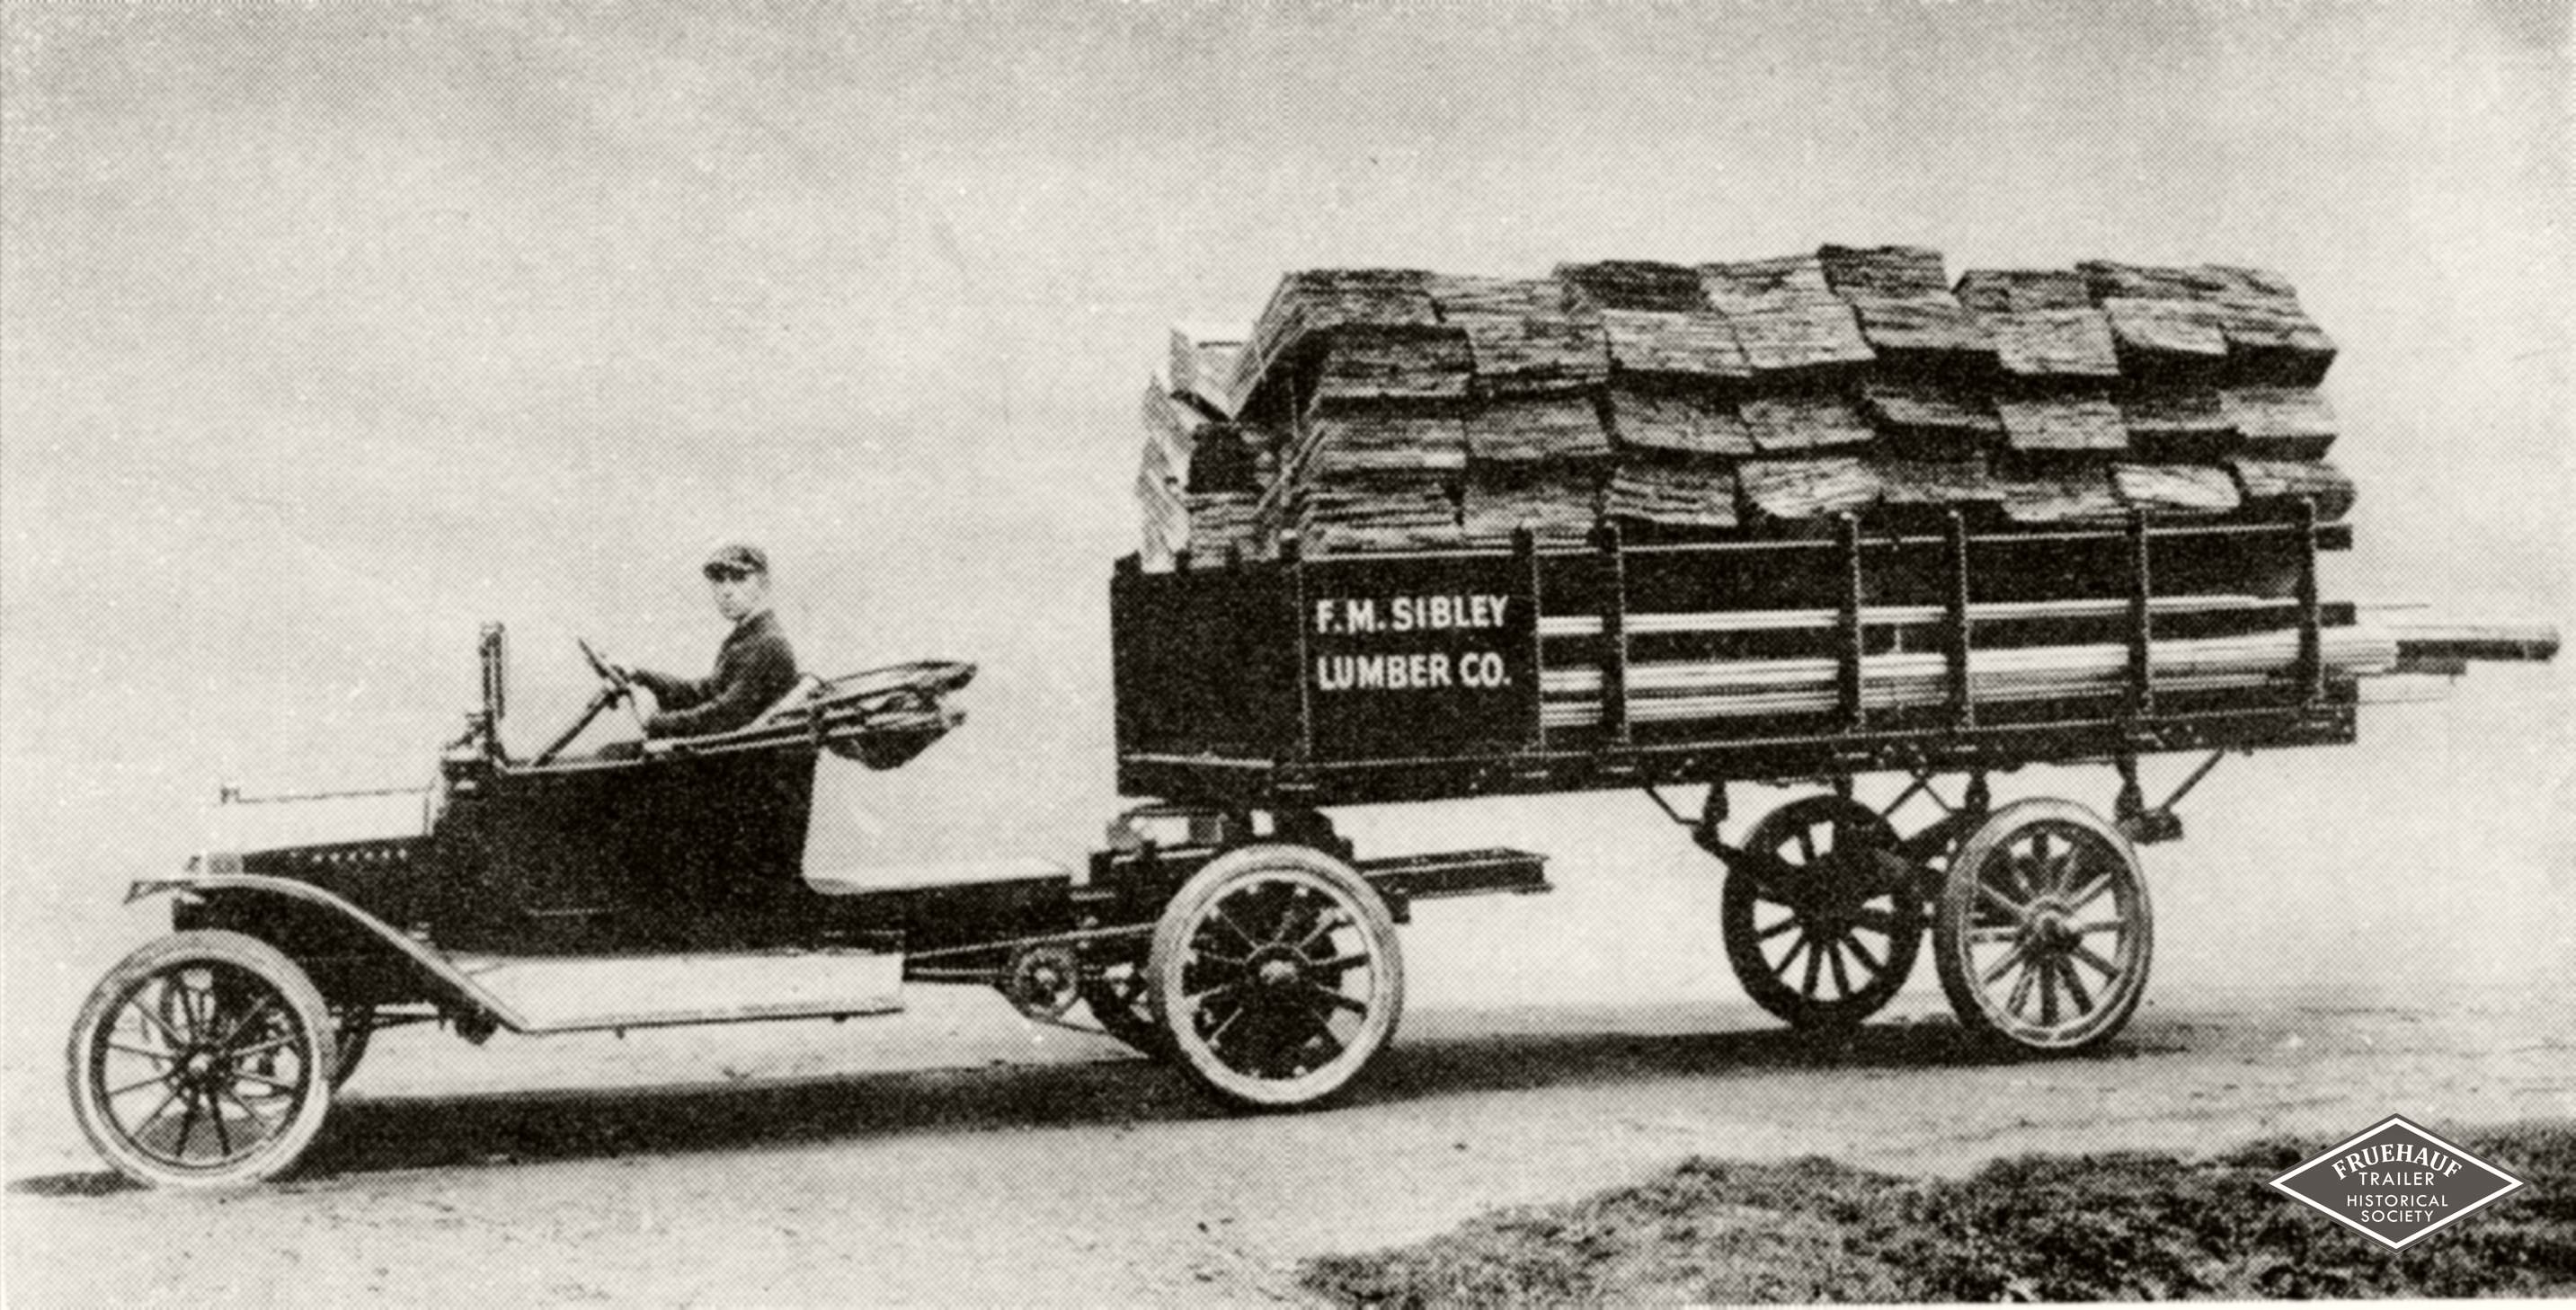 Fruehauf-Trailer-first-one-for-Sibley